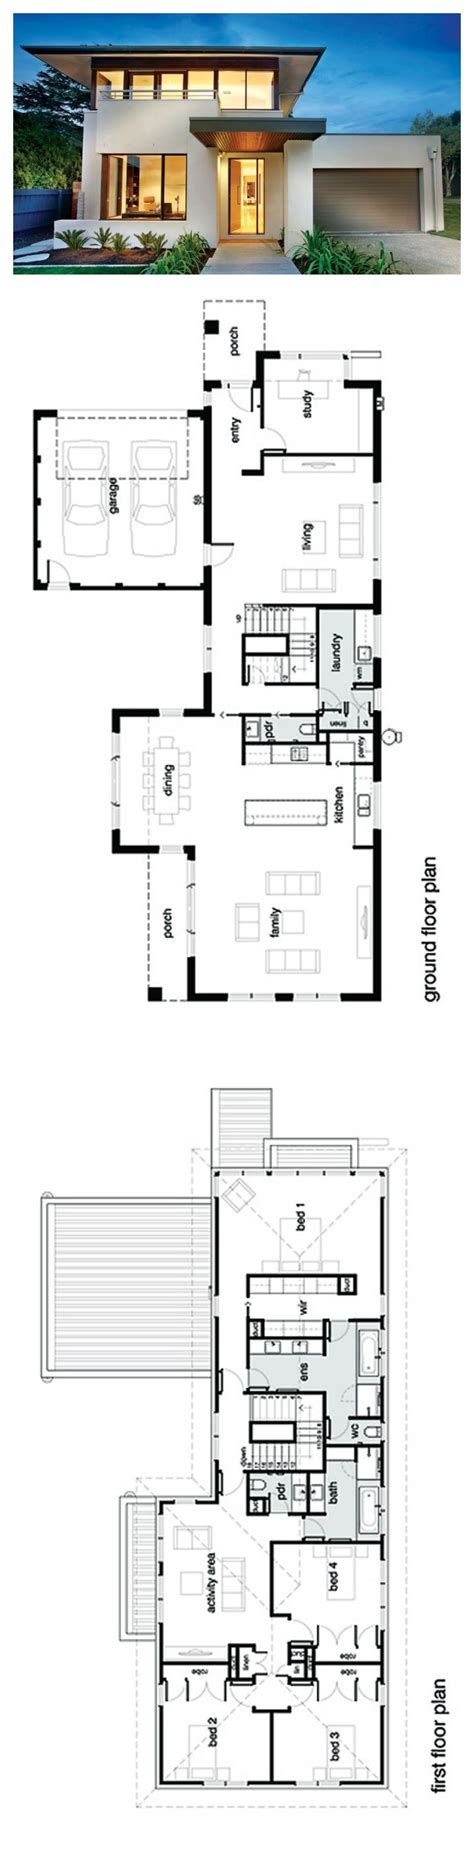 modern home floor plans the 25 best ideas about modern house plans on